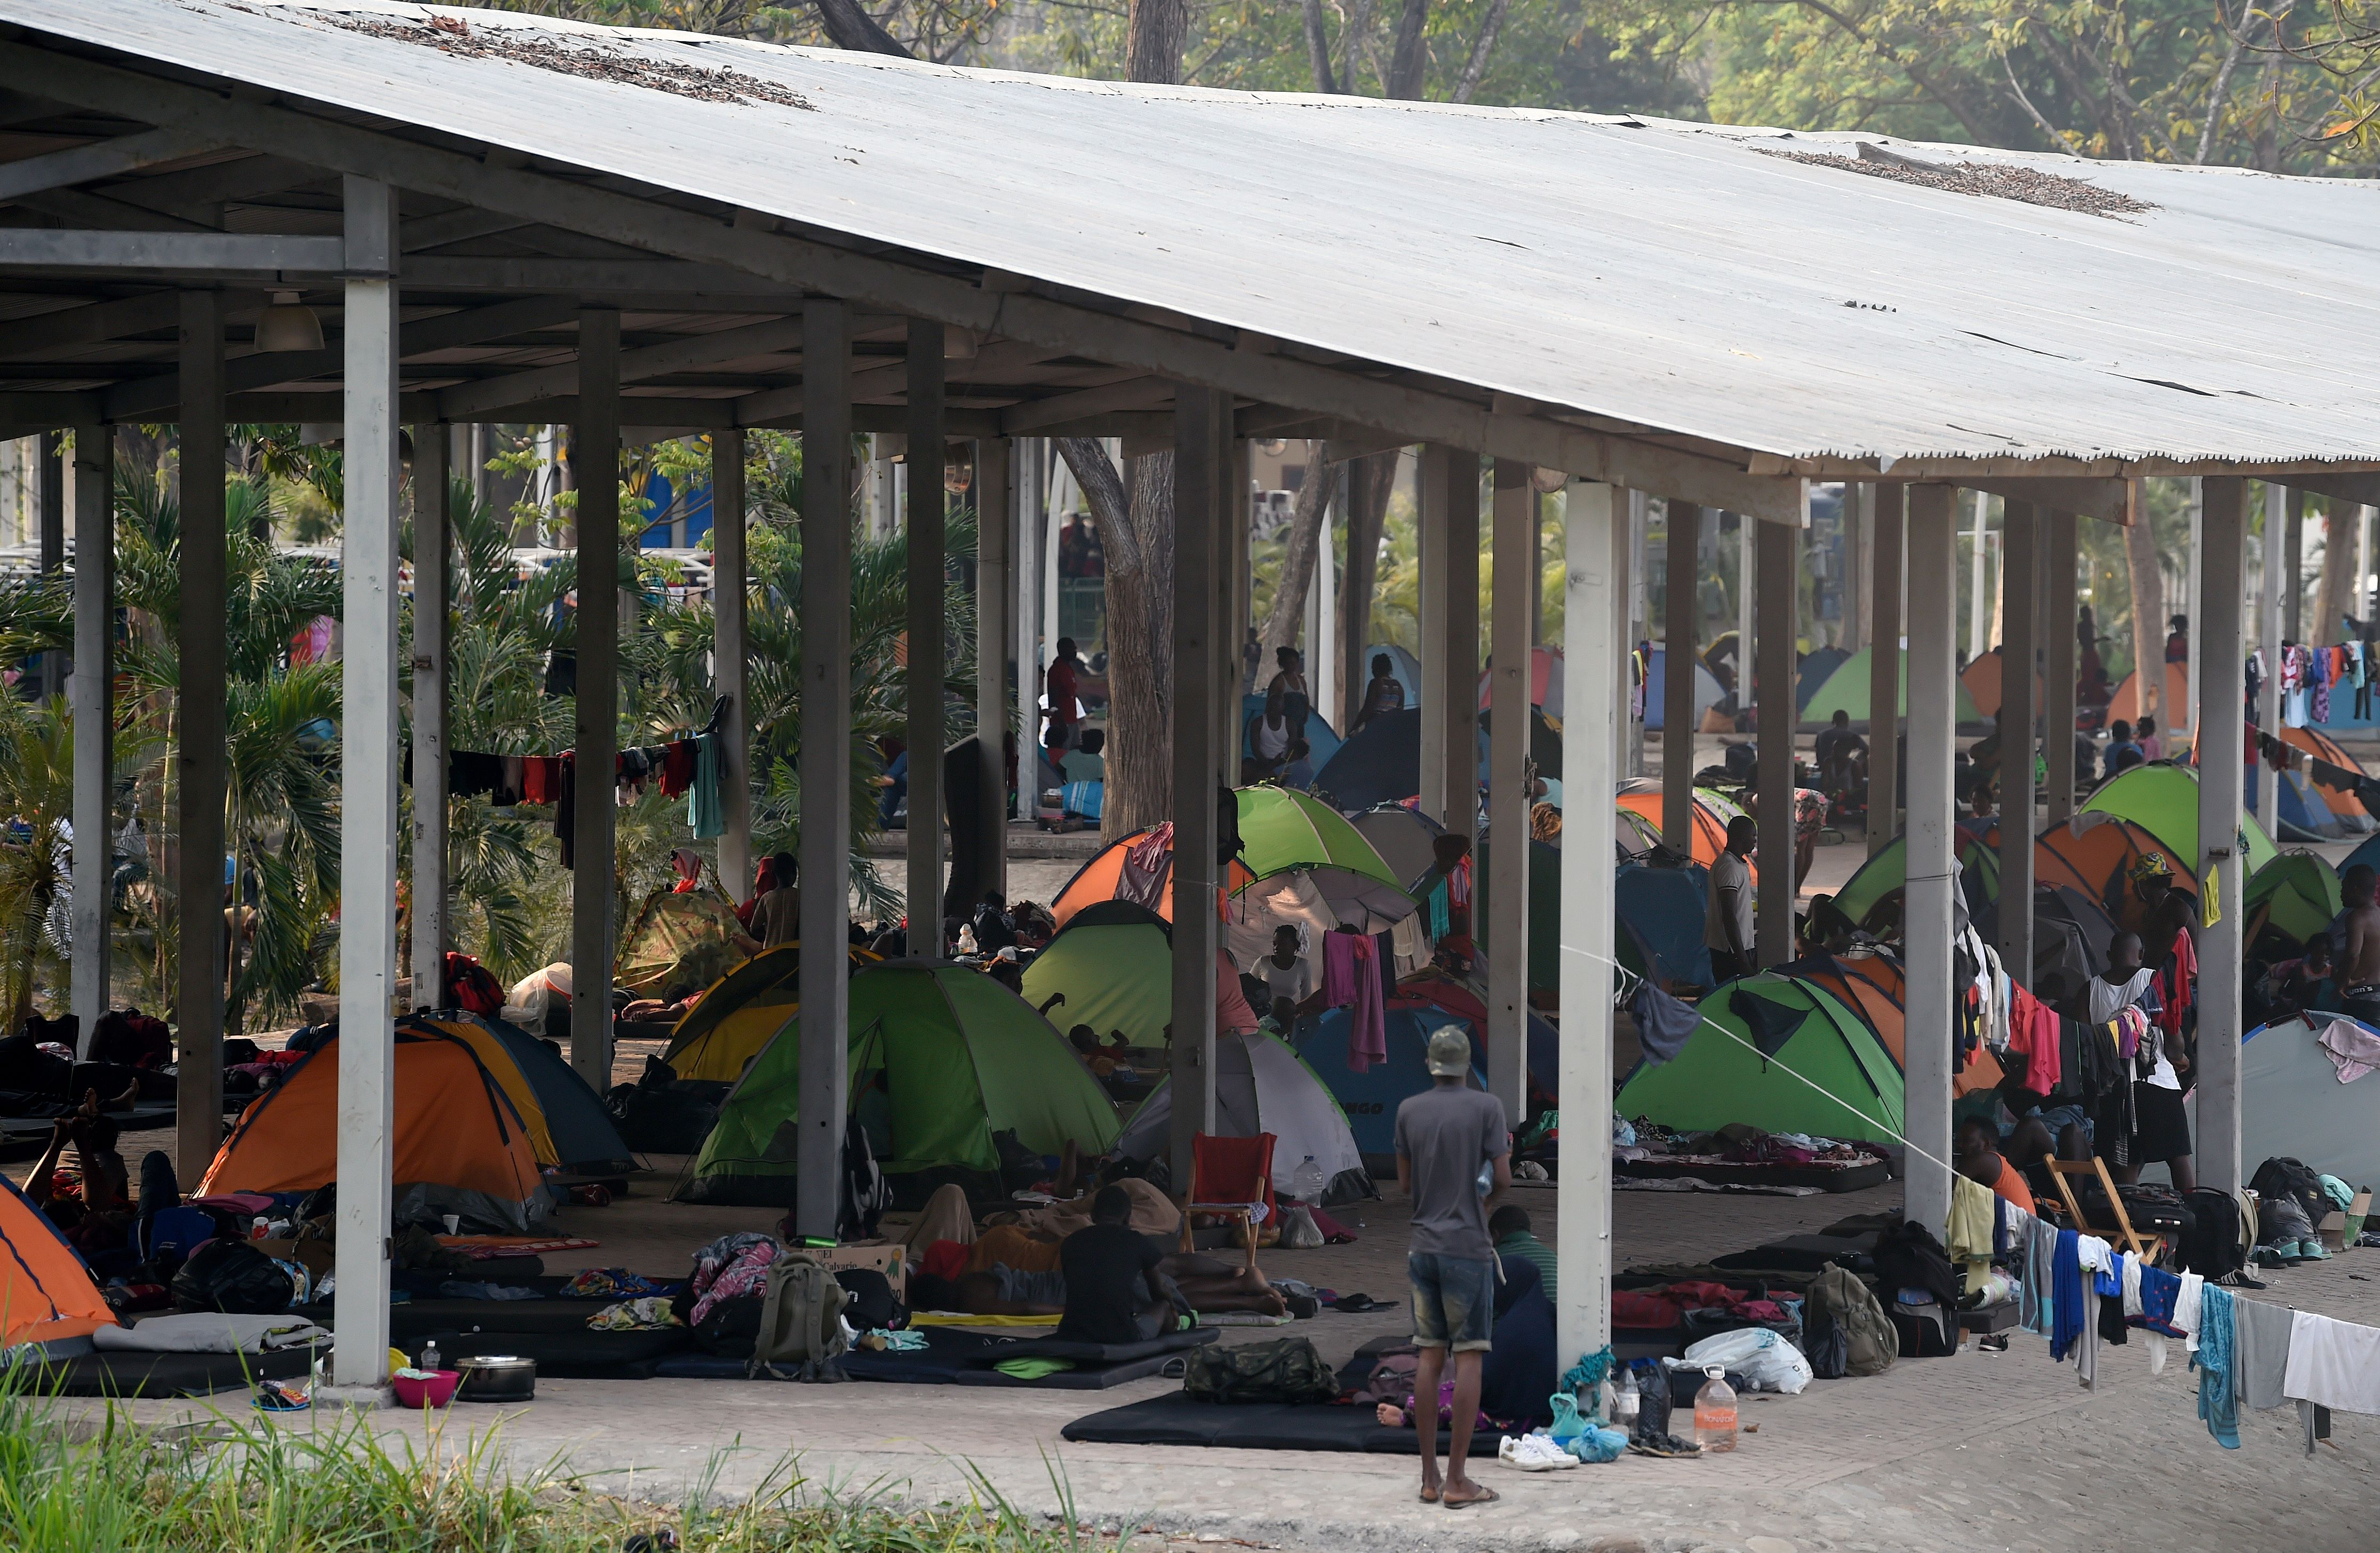 View of 'Feria Mesoamericana' park used as shelter by migrants from Africa, India and Haiti in Tapachula, Chiapas, southern Mexico, on April 28, 2019. - Traveling through Mexico has become even more difficult for migrants due to tighter immigration rules and a local population reluctant to give them shelter or support as they move toward the United States to try to improve their lives. (Photo by ALFREDO ESTRELLA / AFP) (Photo credit should read ALFREDO ESTRELLA/AFP/Getty Images)